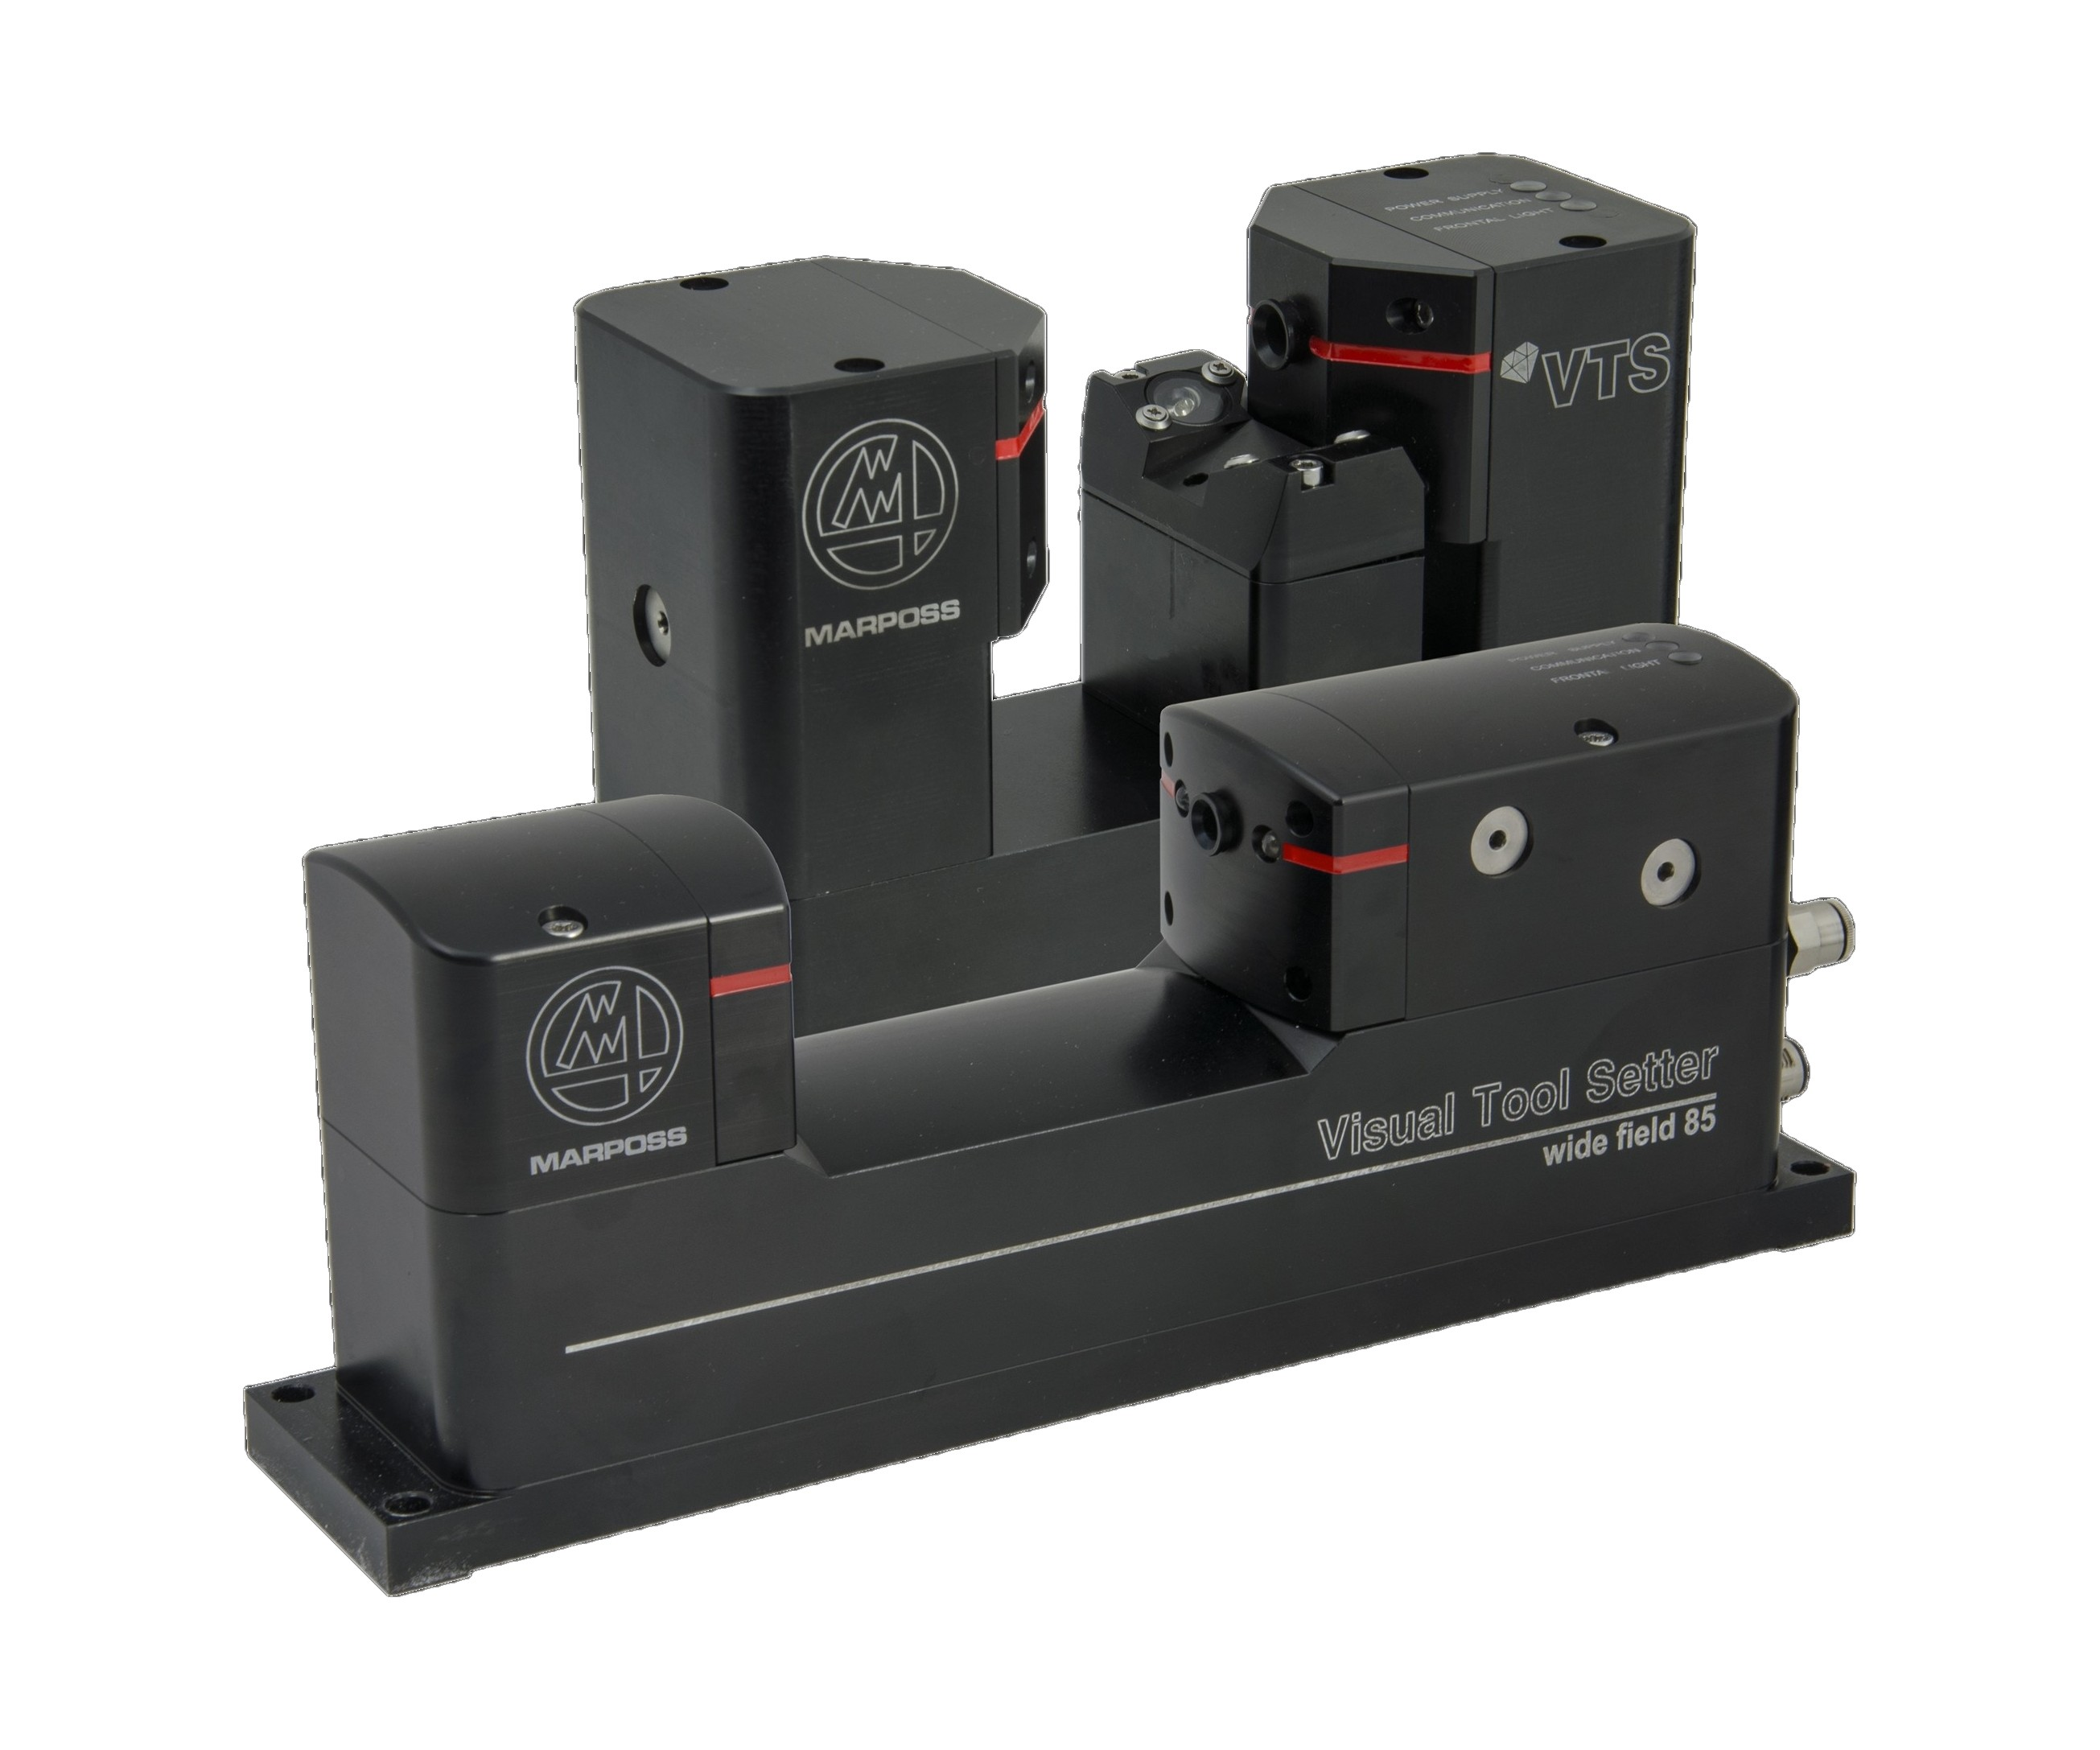 Marposs visual tool setter